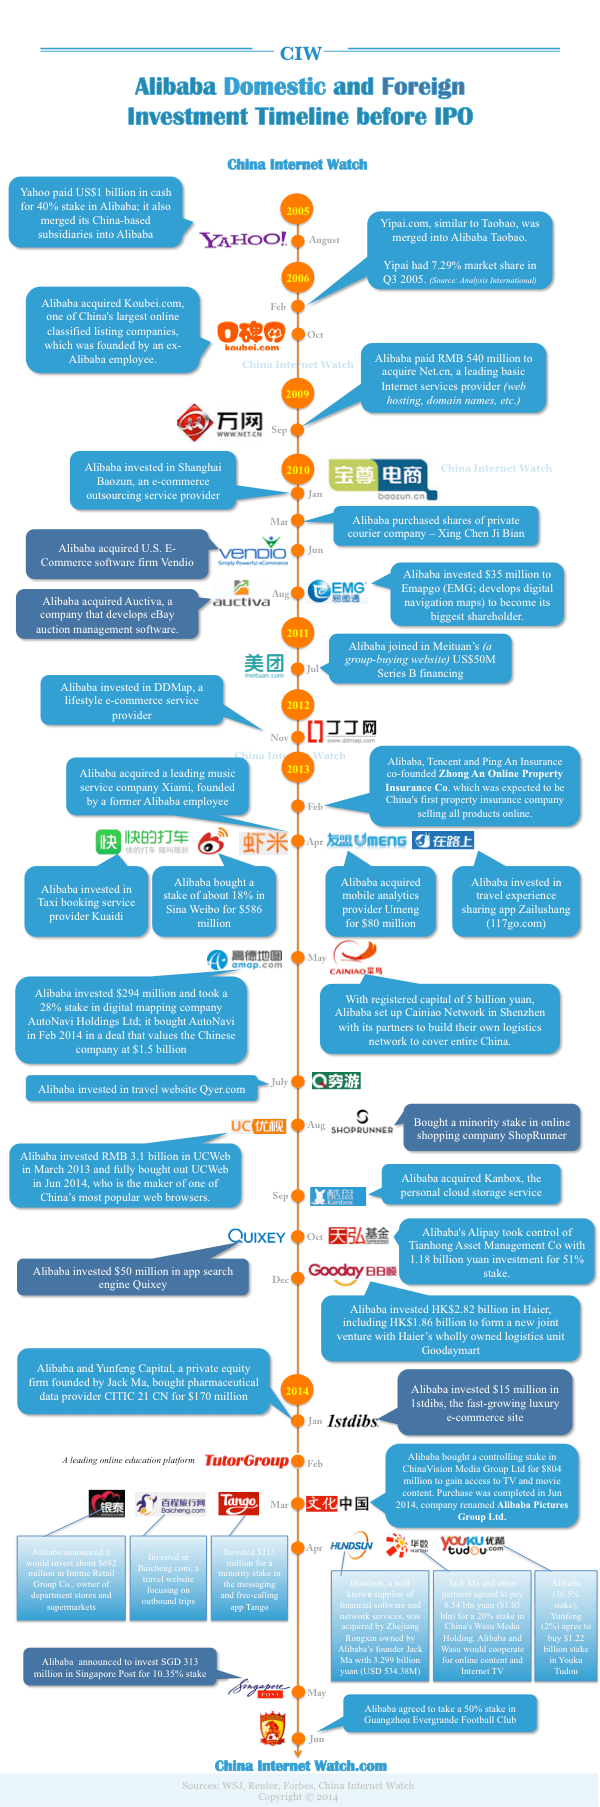 ciw-alibaba-investment-timeline-2014